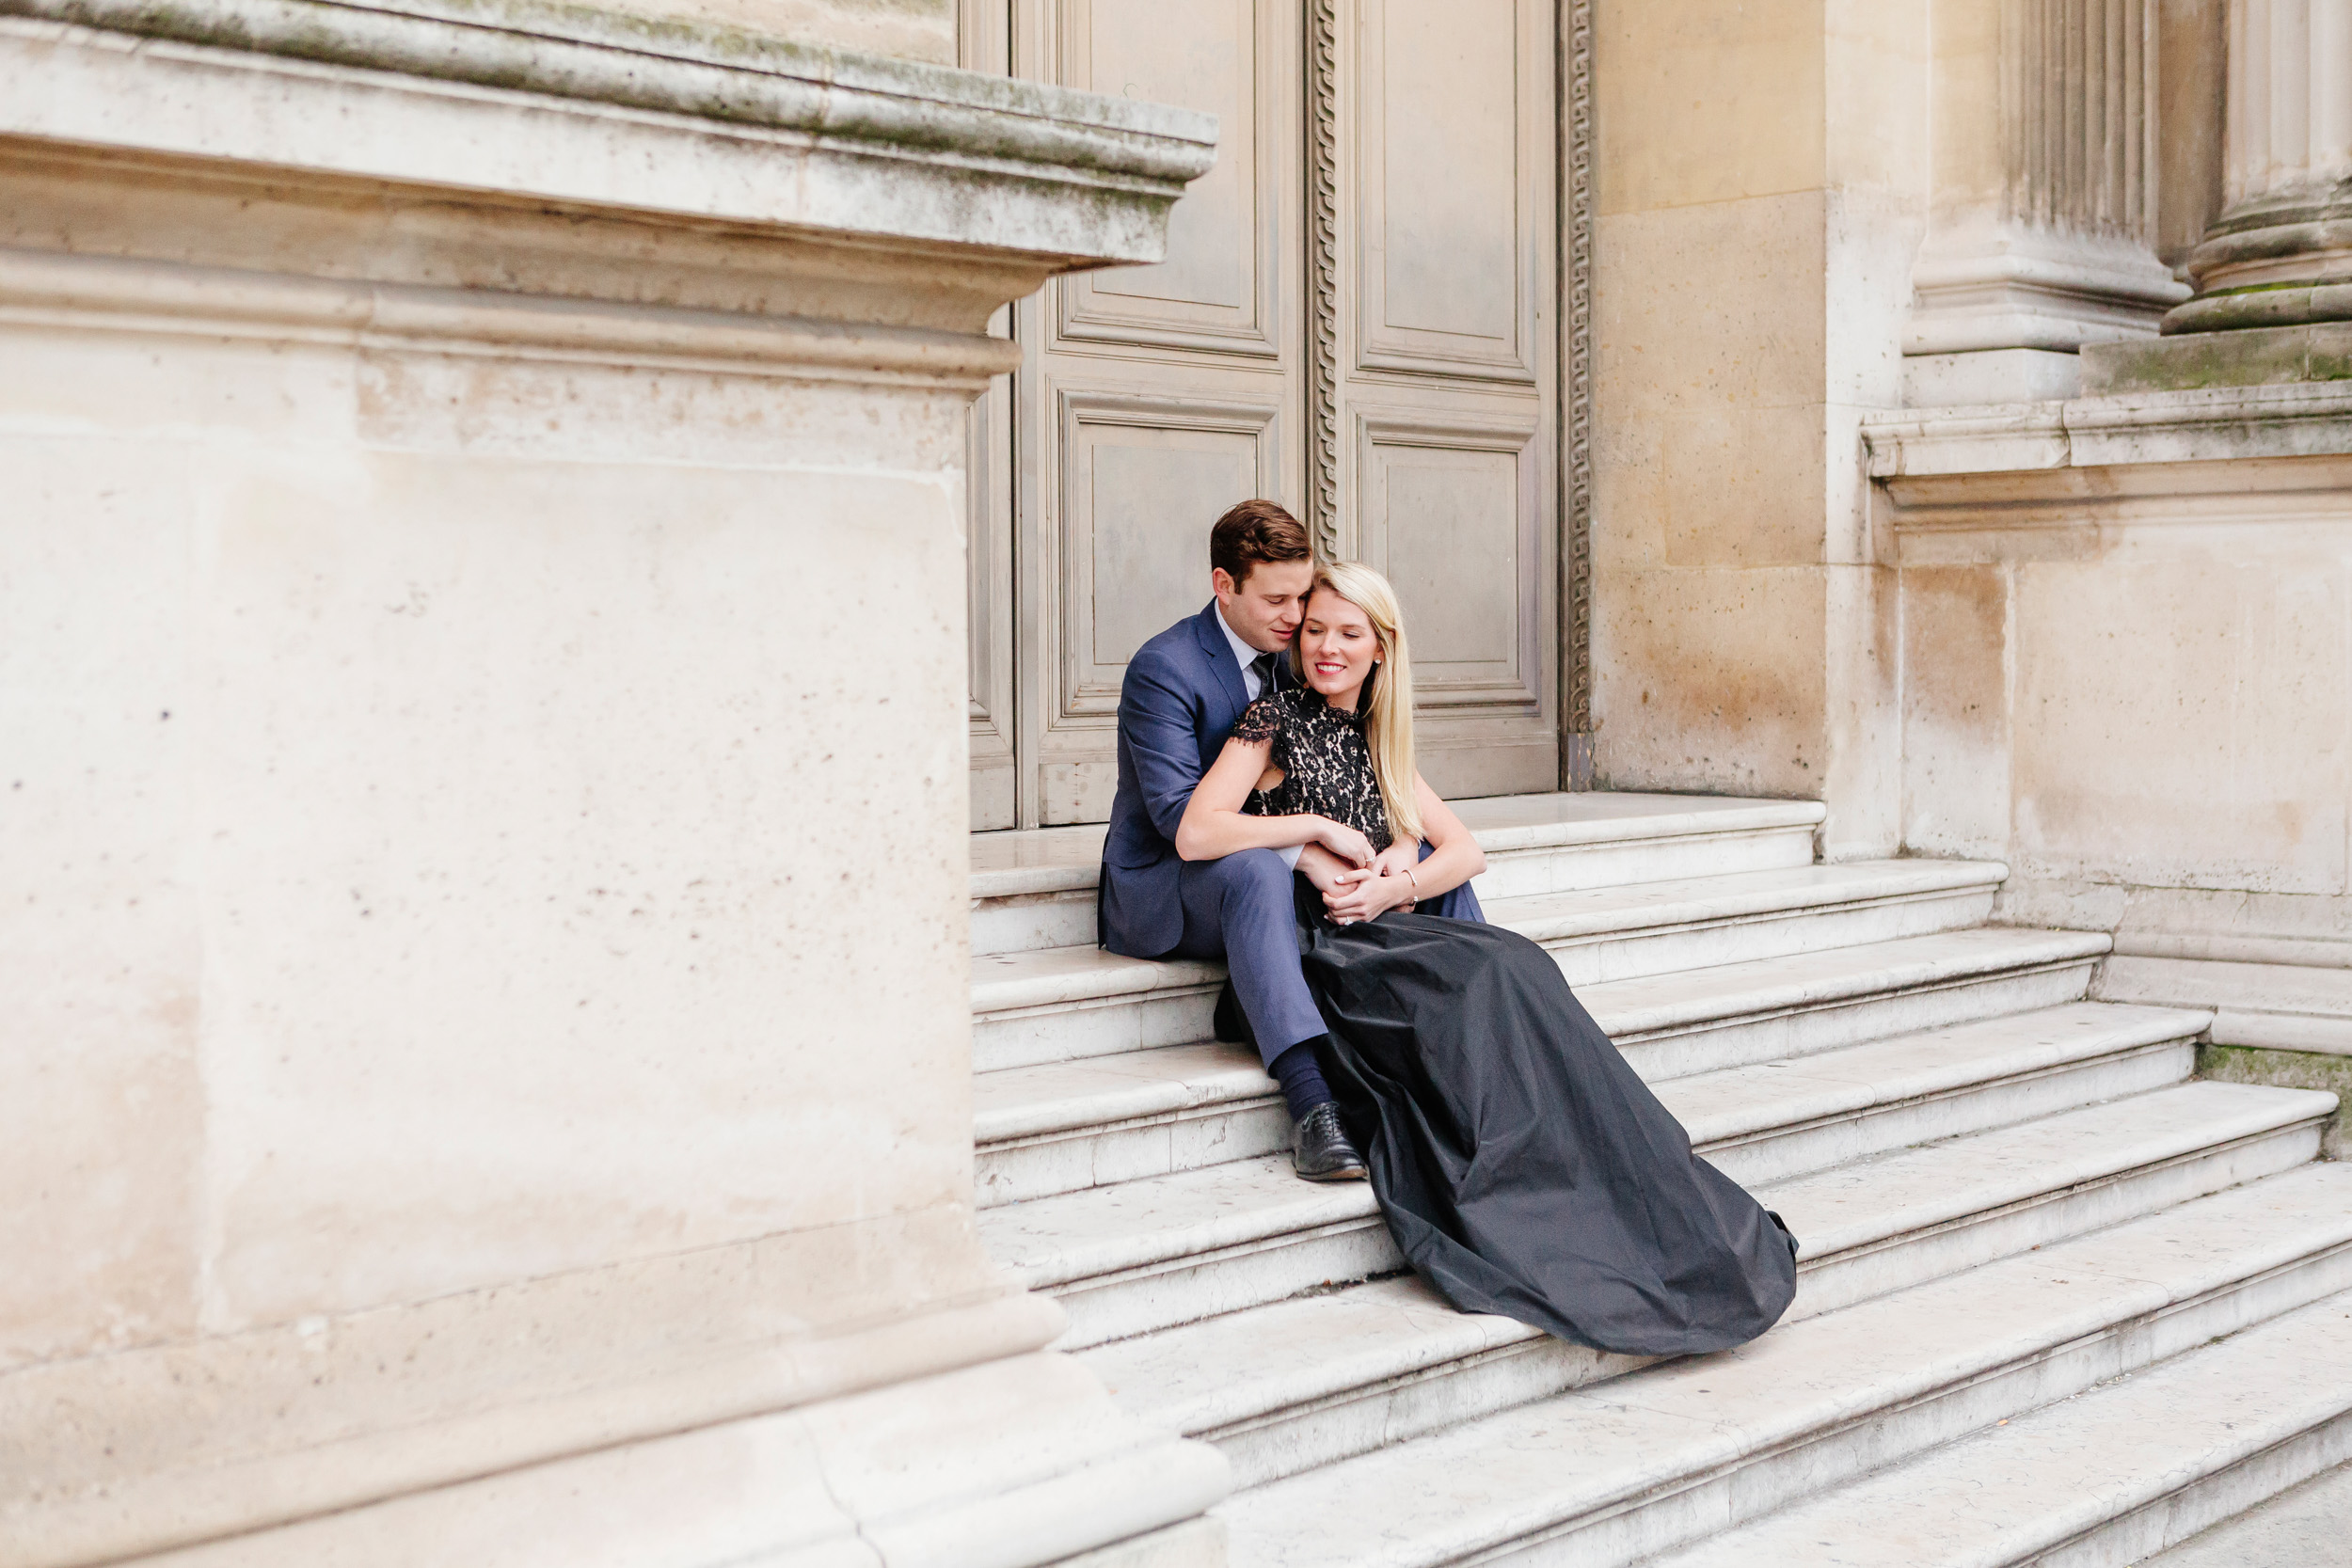 Paris vacation couple portrait sitting on the steps in the courtyard of Louvre Museum captured by Paris Photographer Federico Guendel www.iheartparis.fr